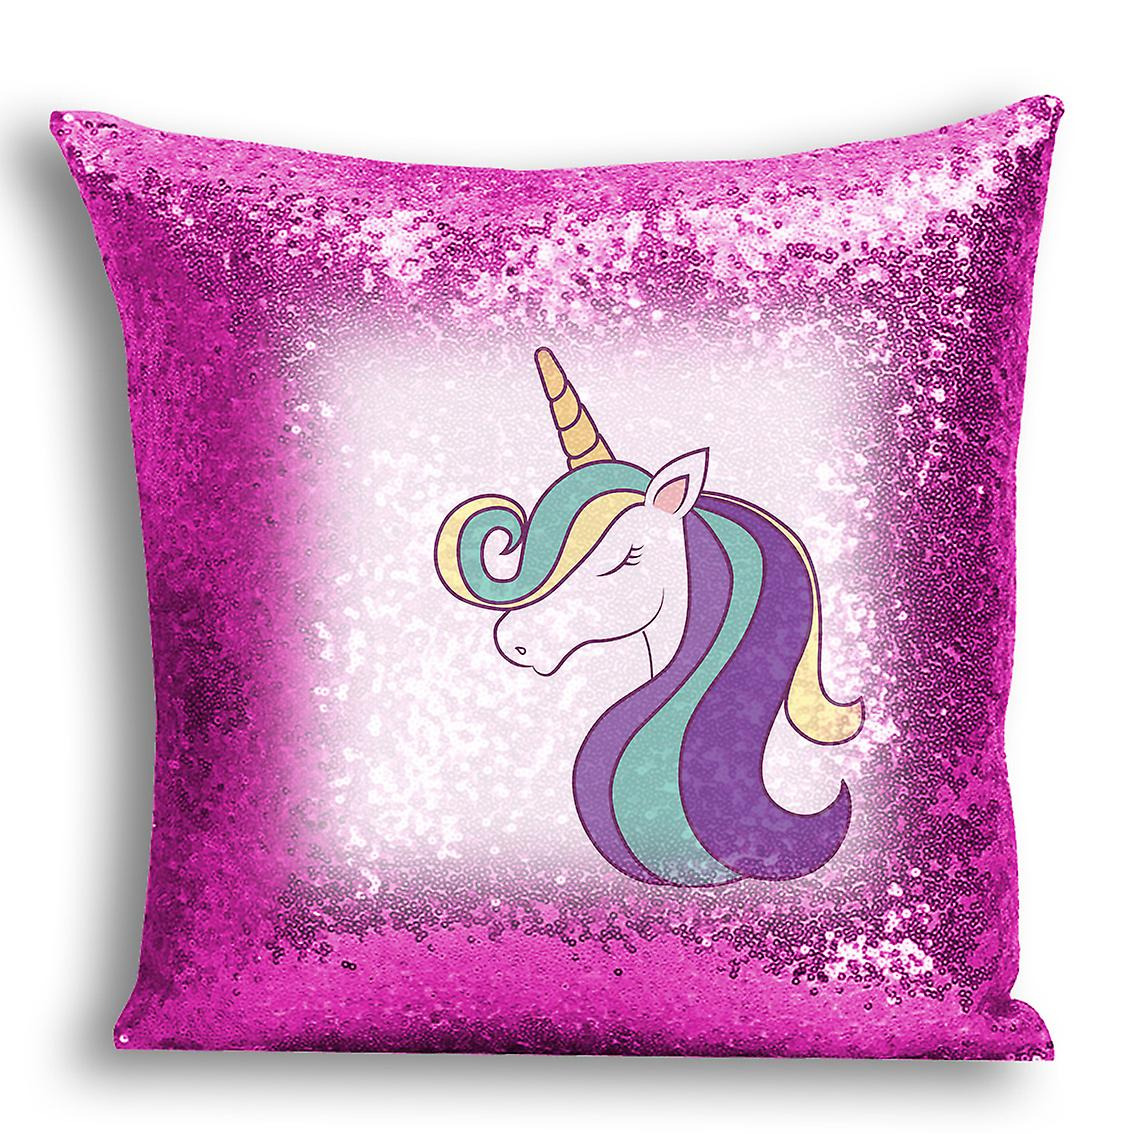 Decor 16 tronixsUnicorn Design Printed Pink I For Home CushionPillow Sequin Cover dQxrWECoBe